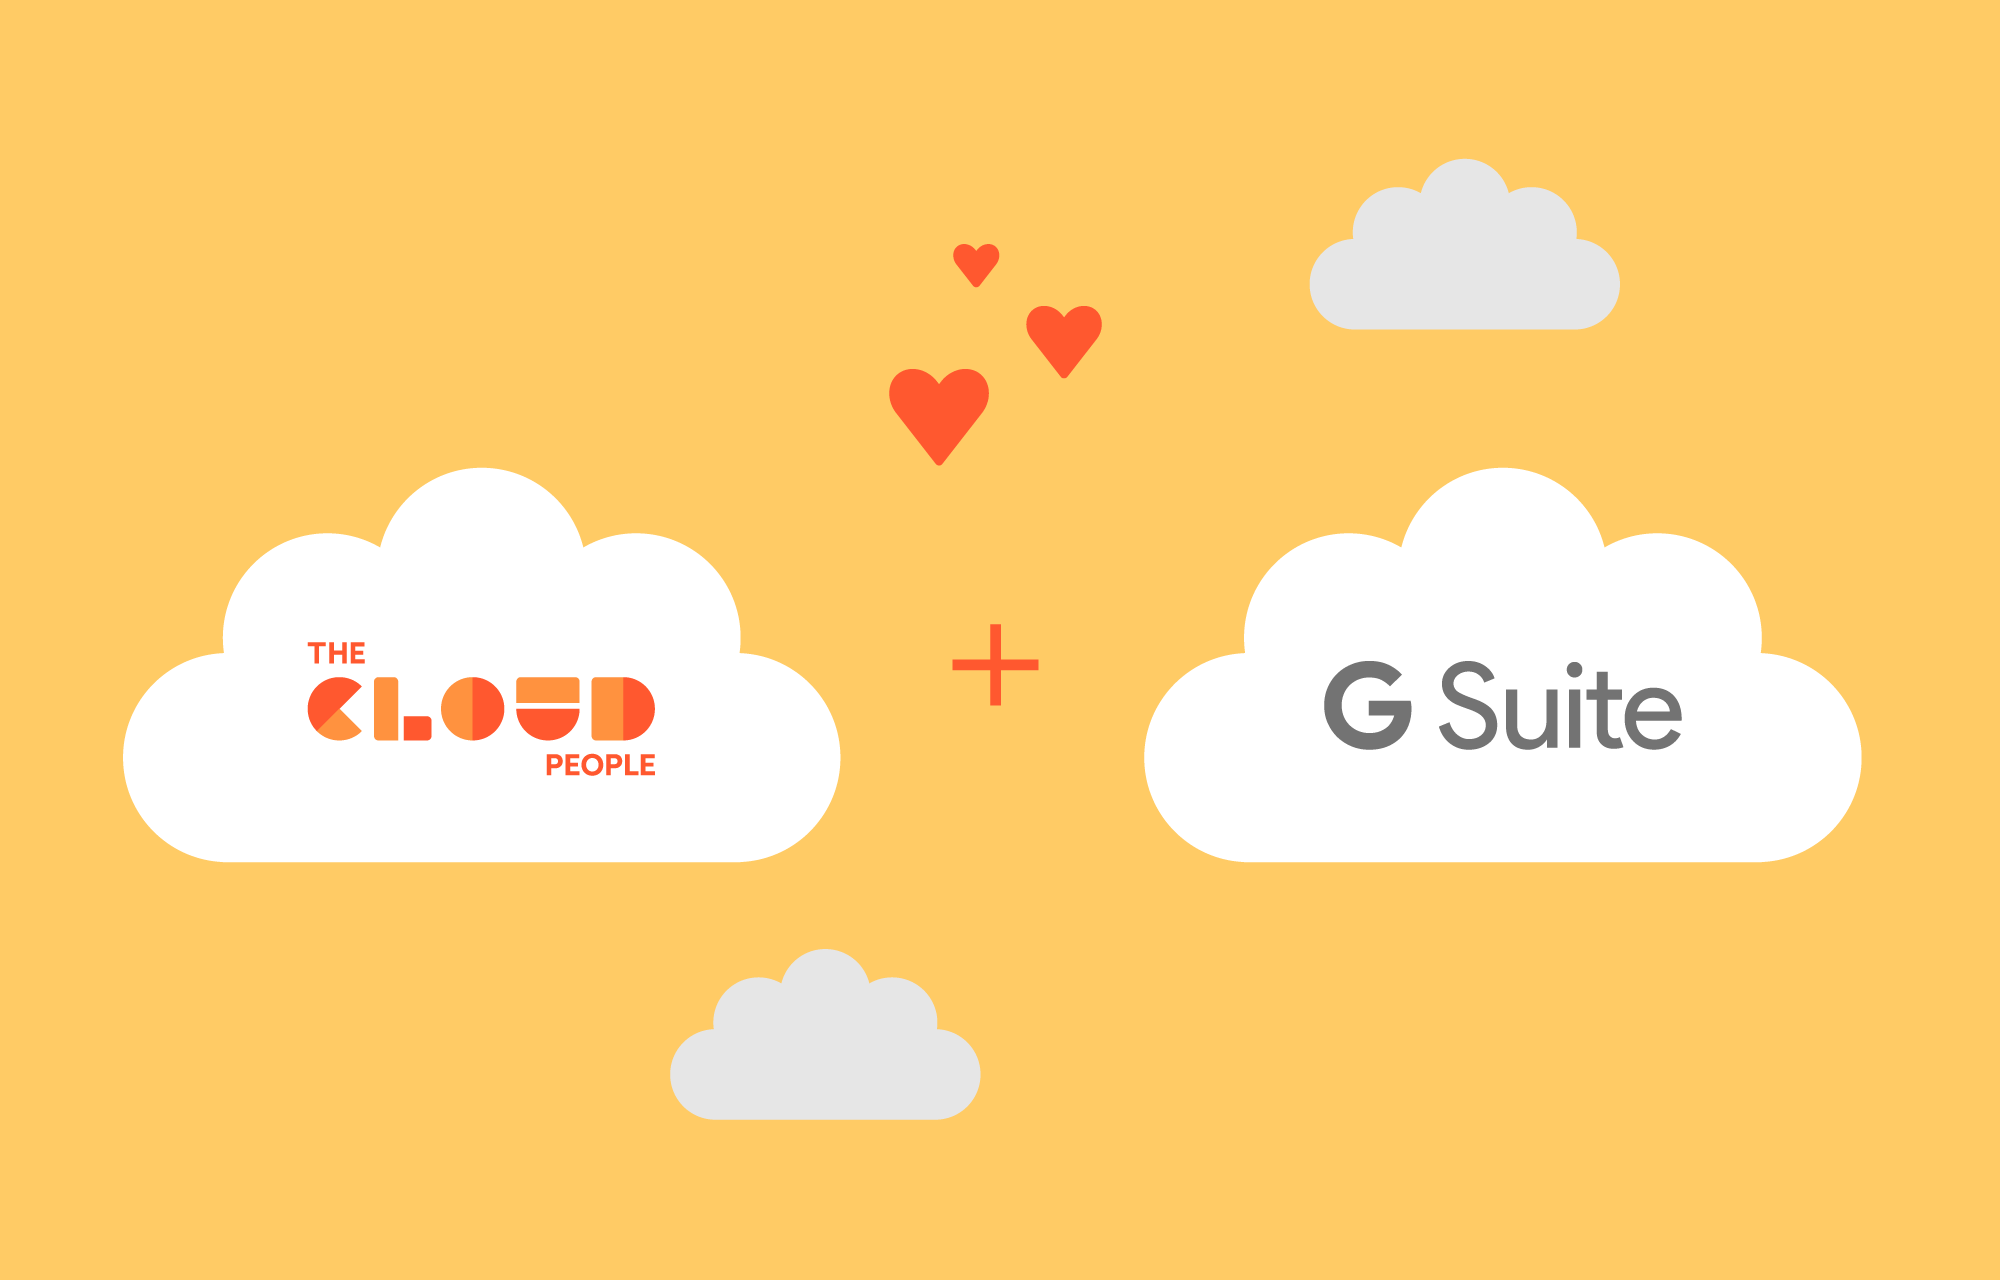 The Cloud People logo and G Suite logo with hearts between them.